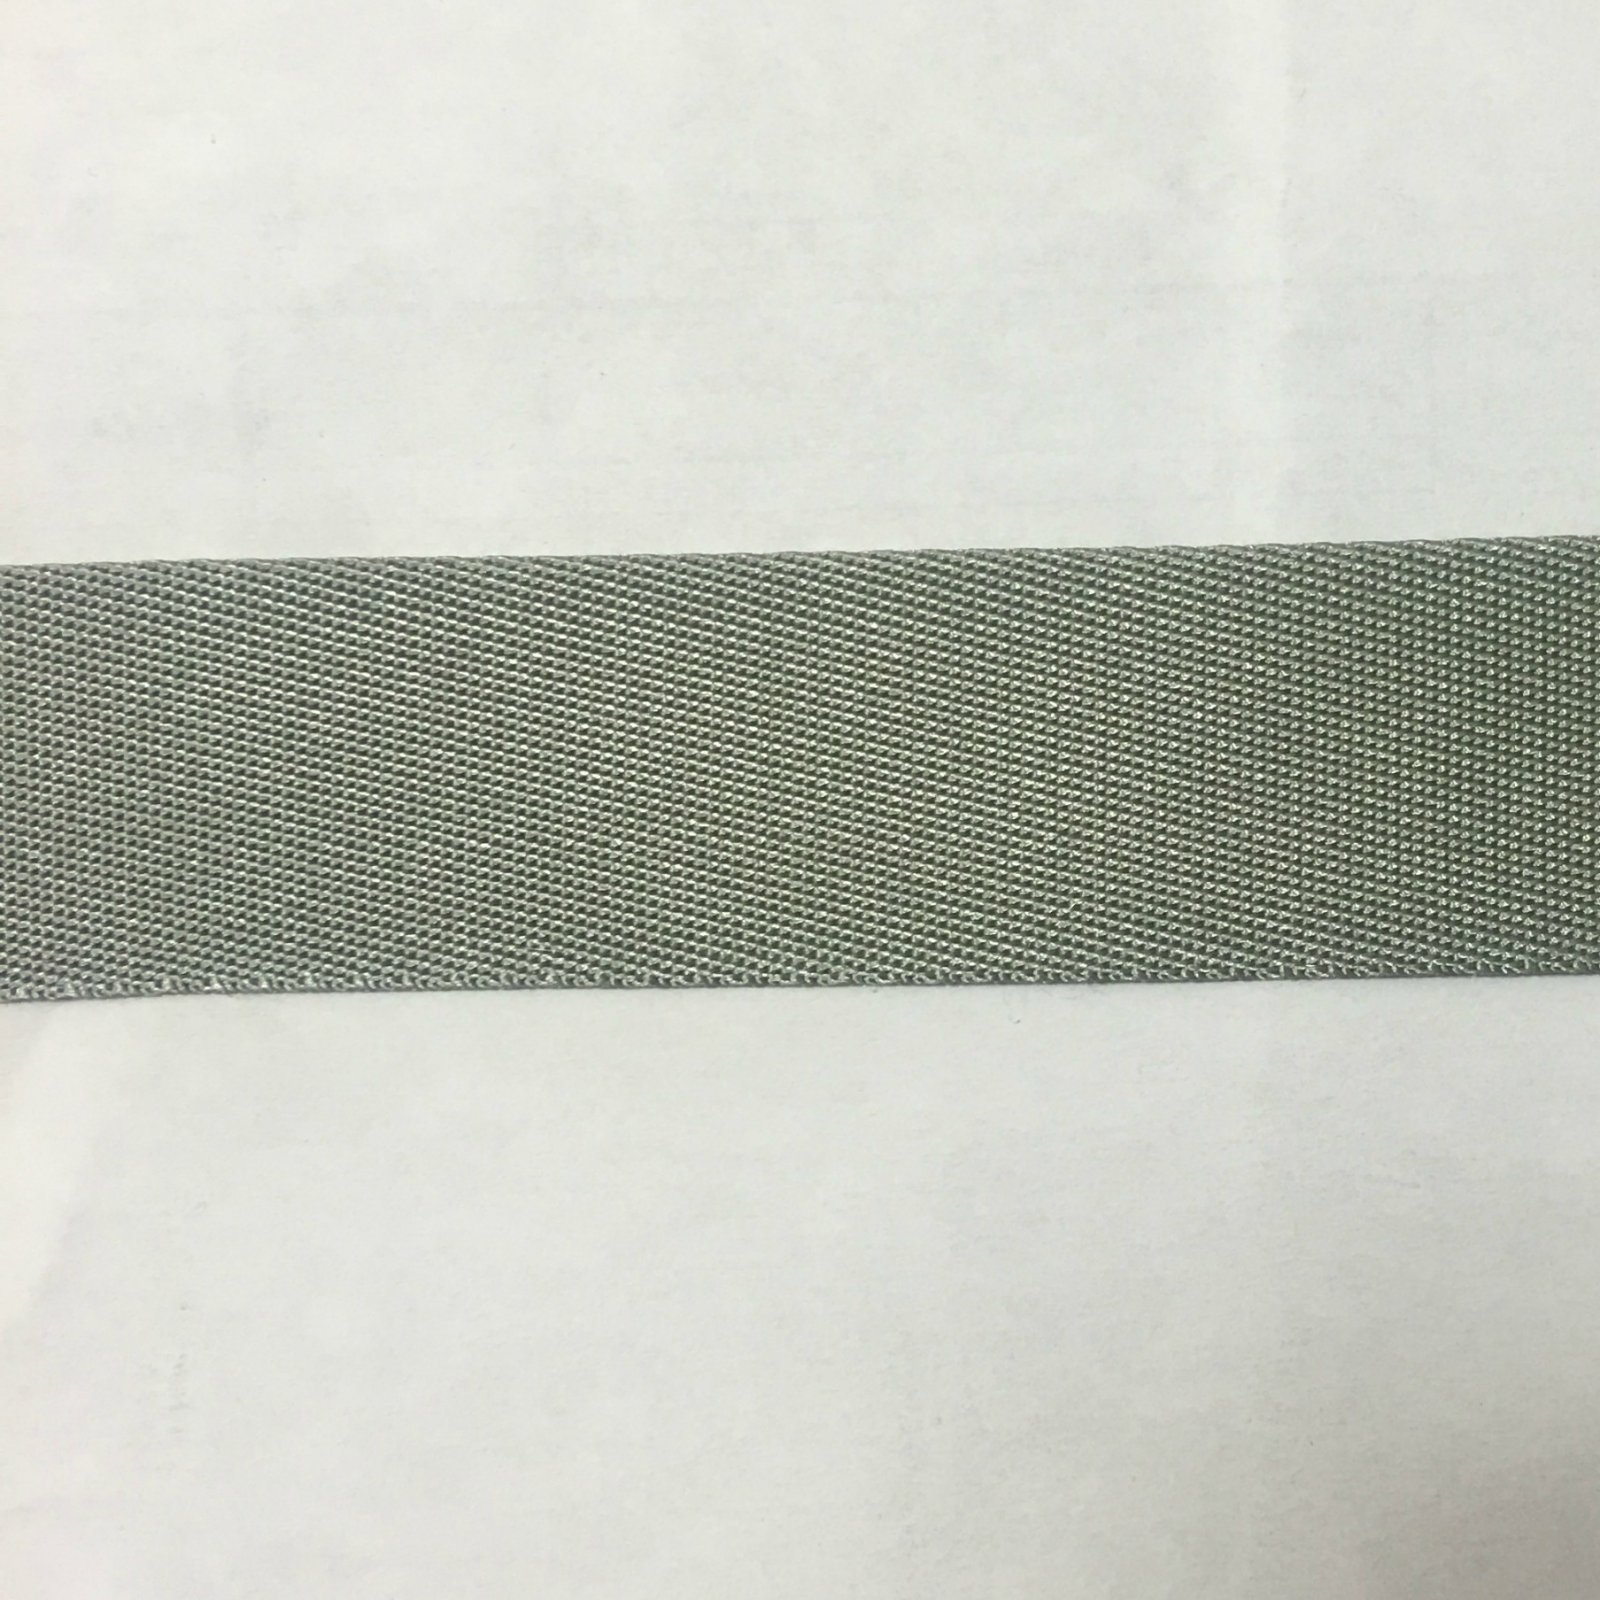 Products from Abroad - 1 3/8 Webbing - Light Grey